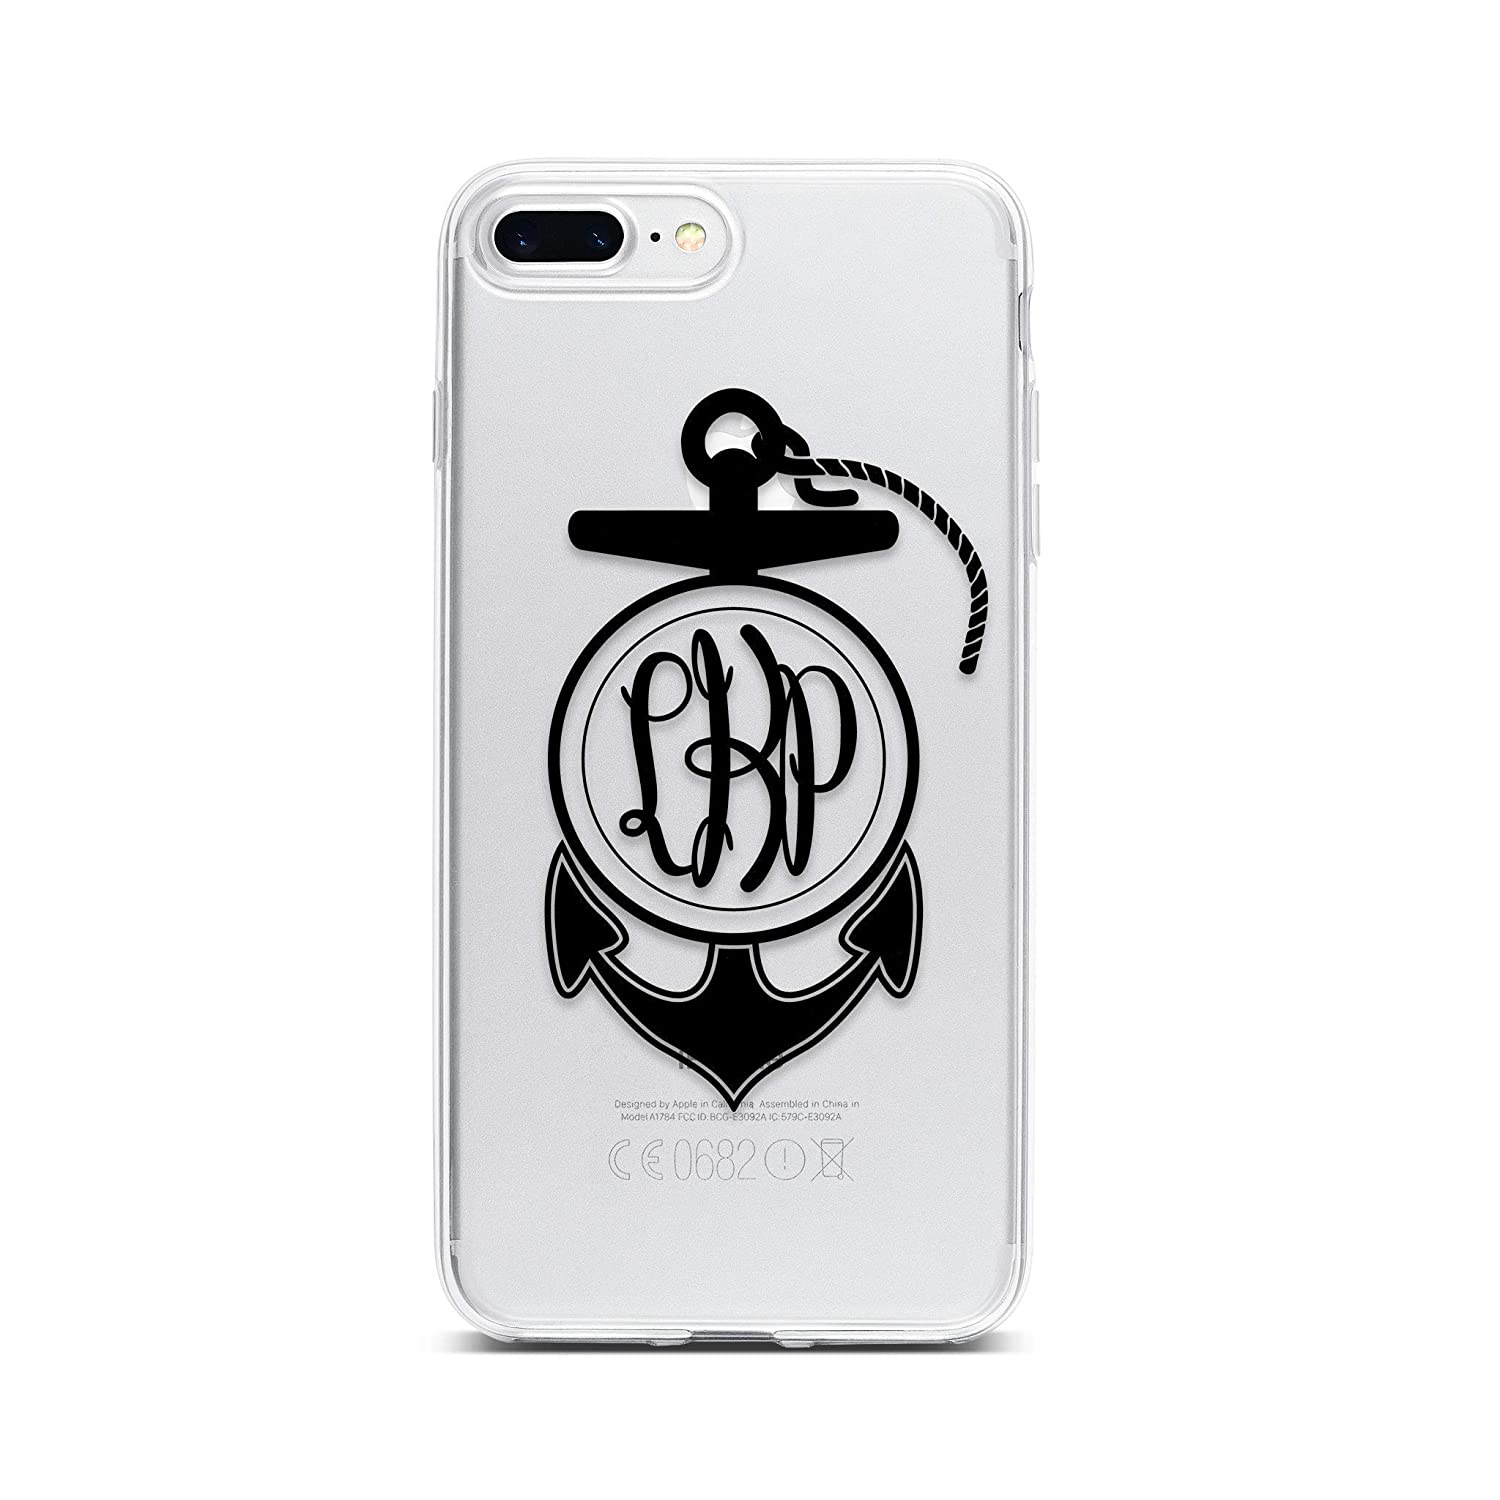 Monogram Anchor Clear Phone Case for iPhone XS Max XR X 10 8 Plus 7 6s 6 SE 5s 5 Personalize with Custom Initials